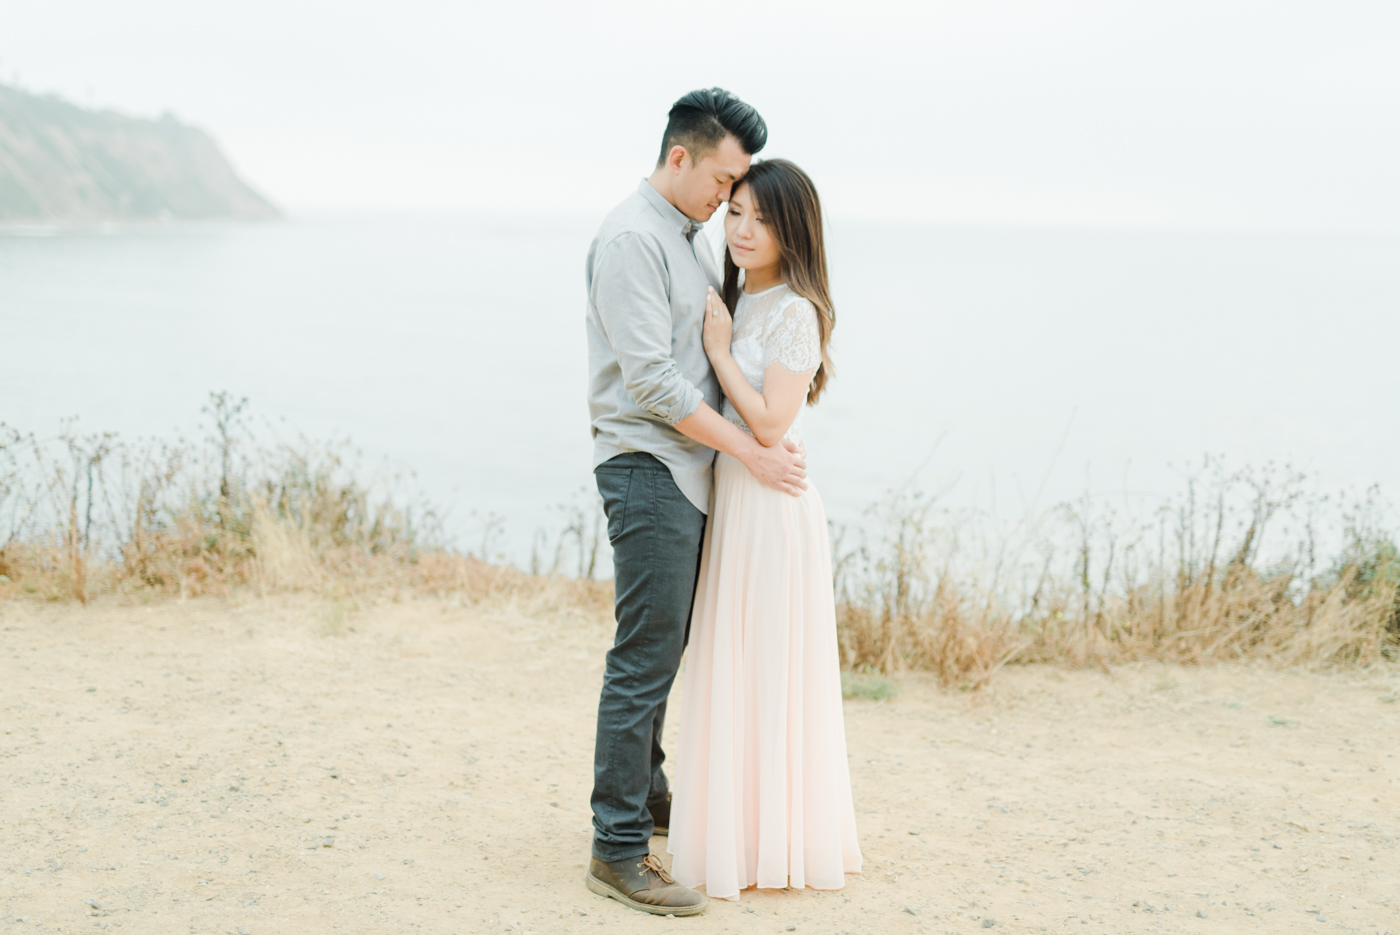 Palos_Verdes_Beach_Engagement_Session_Los_Angles_Fine_Art_Wedding_Photographer-13.jpg